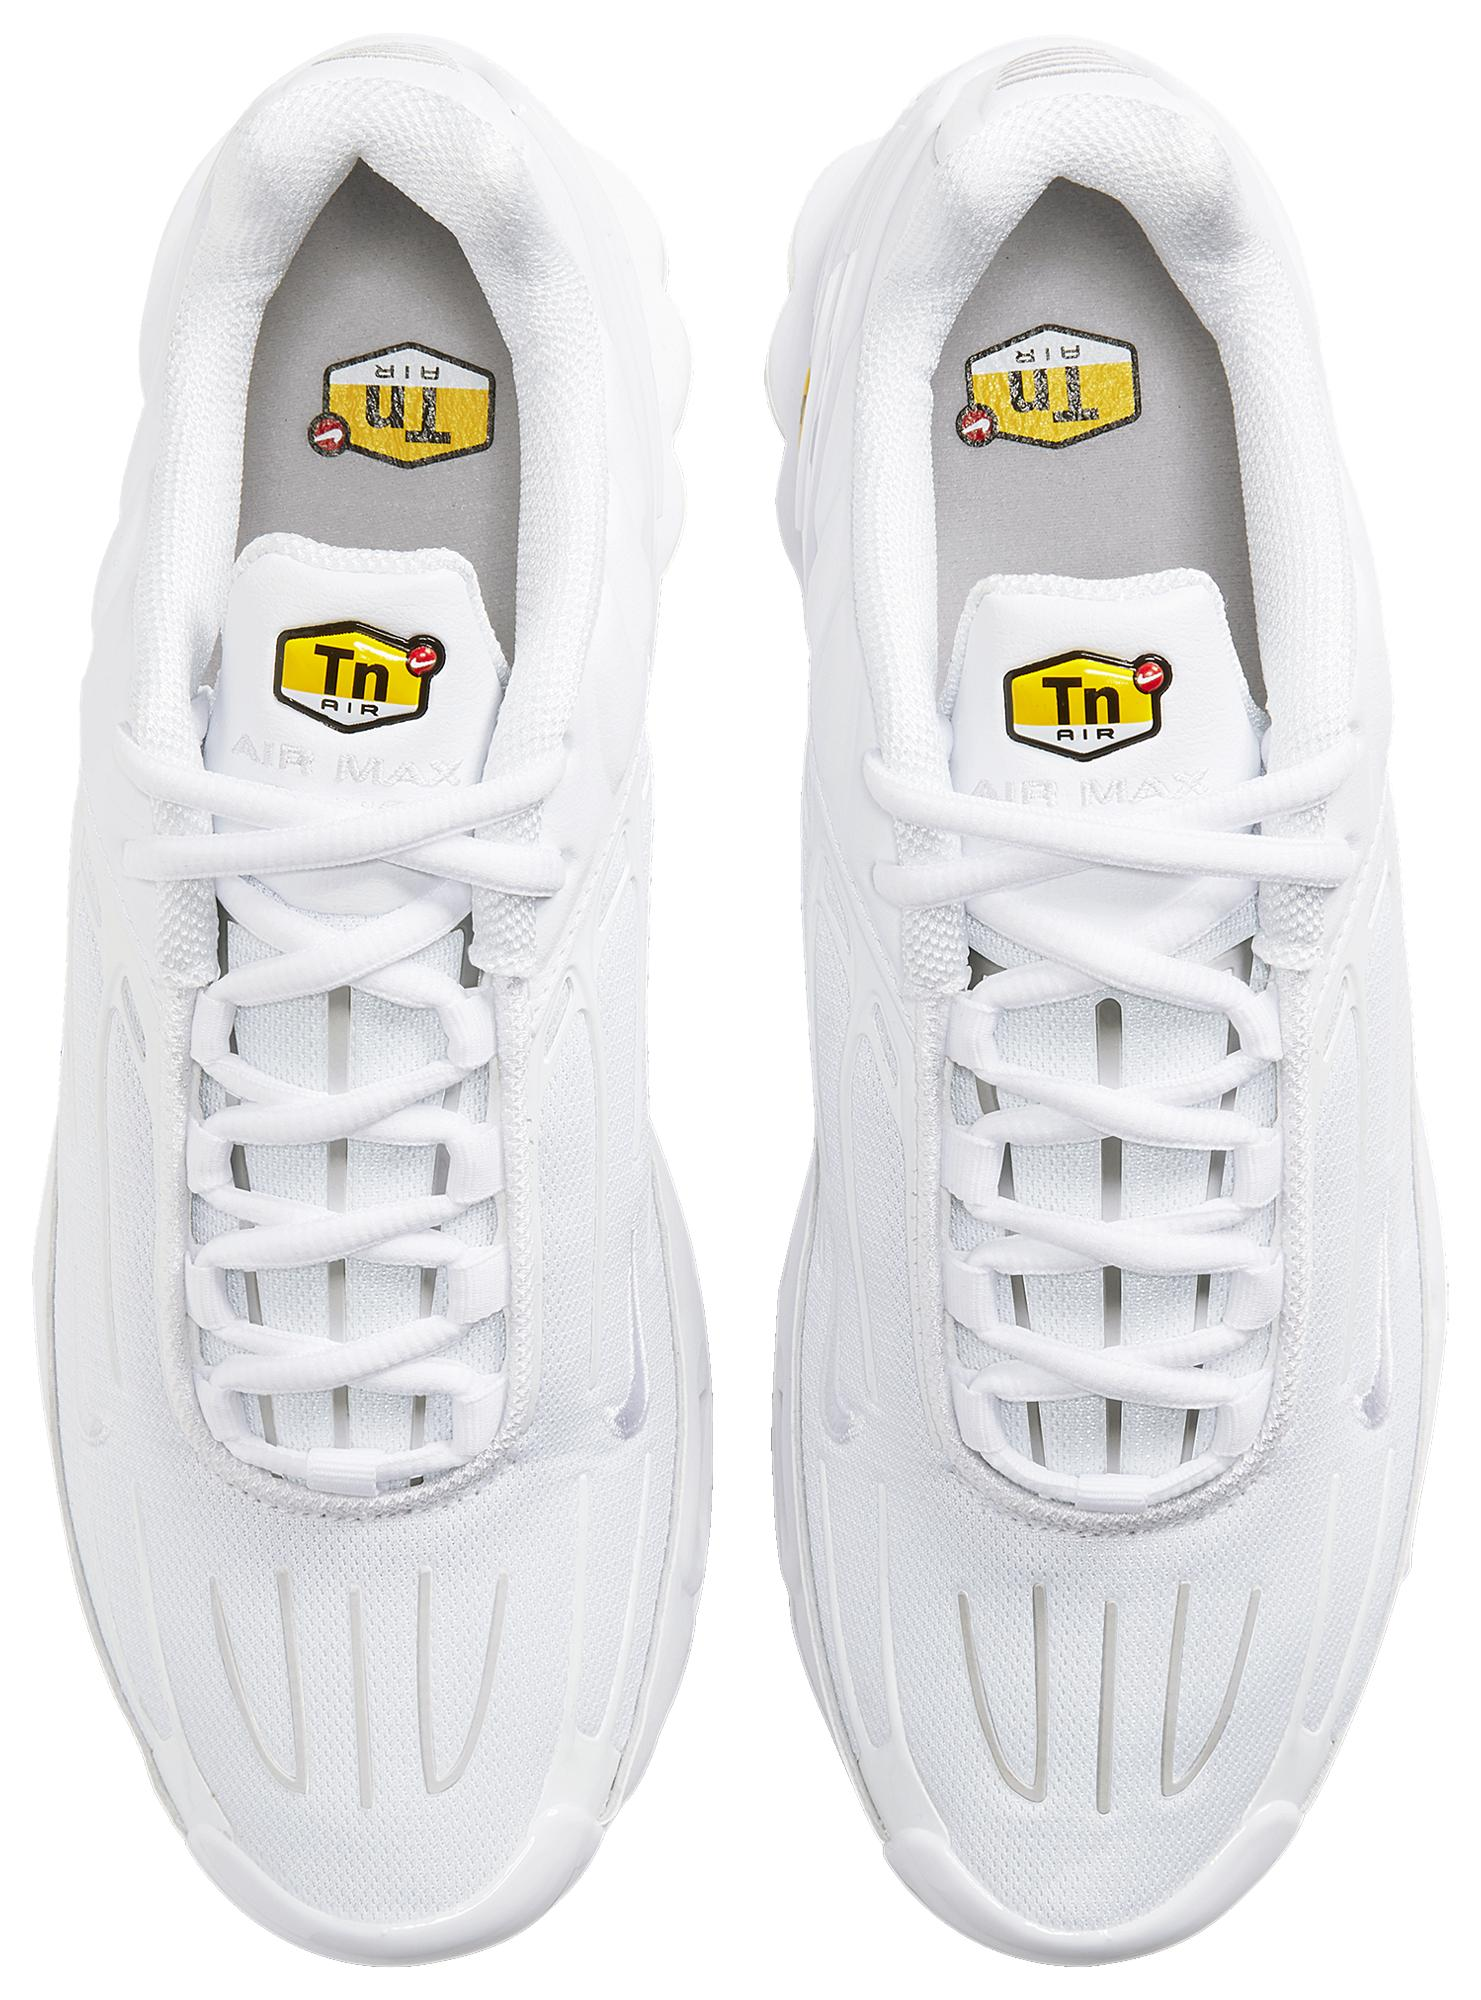 Nike Leather Air Max Plus Iii - Shoes in White/White/Grey (White ...